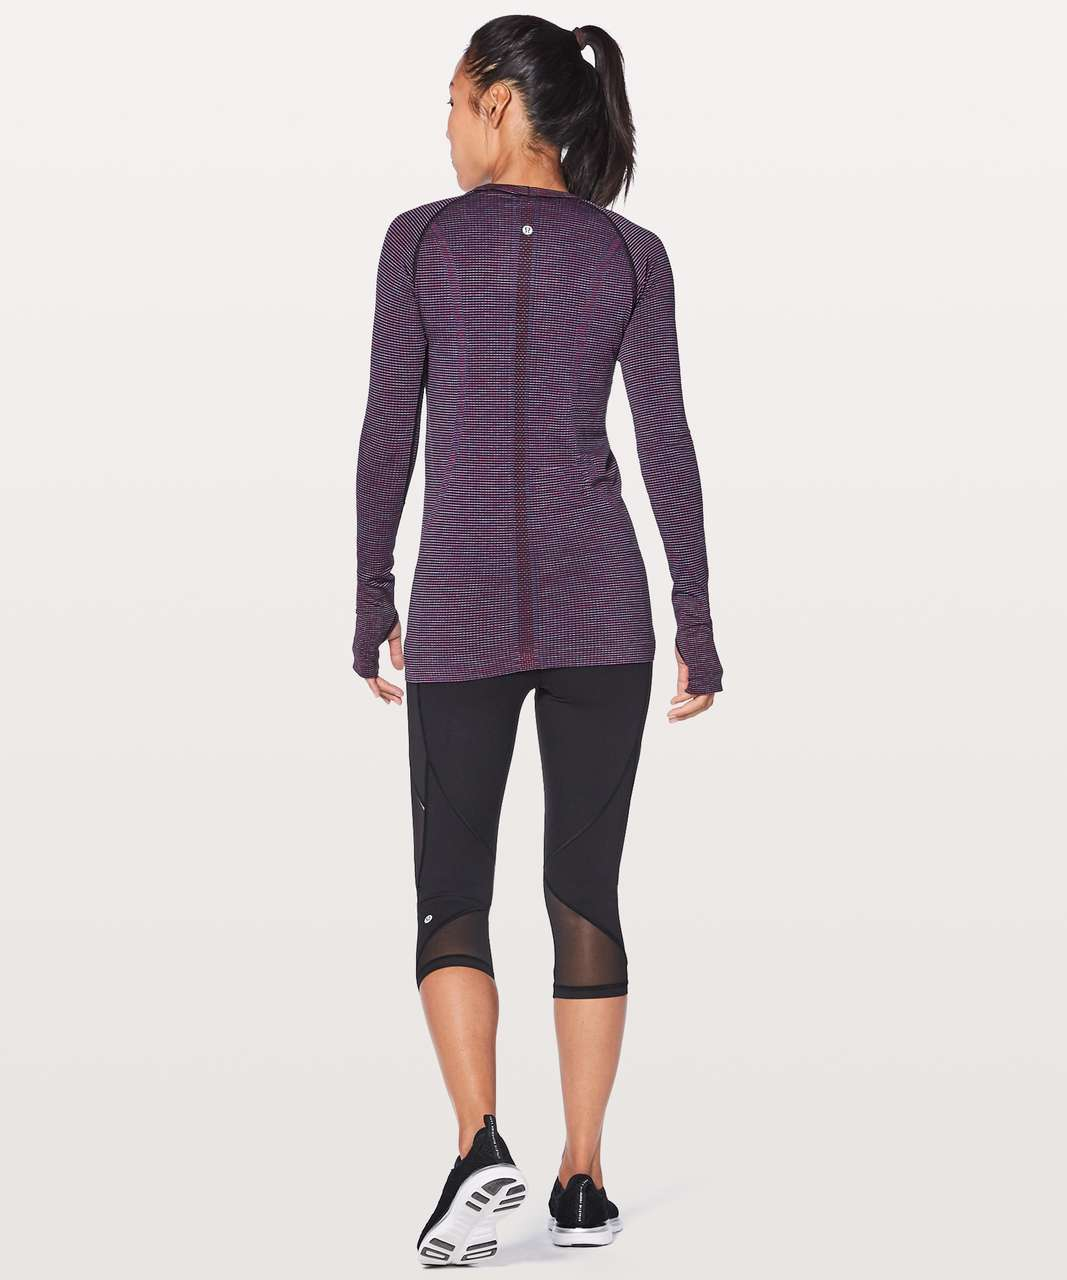 Lululemon Swiftly Tech Long Sleeve Crew - Pink Paradise / Black / Lavender / Blue